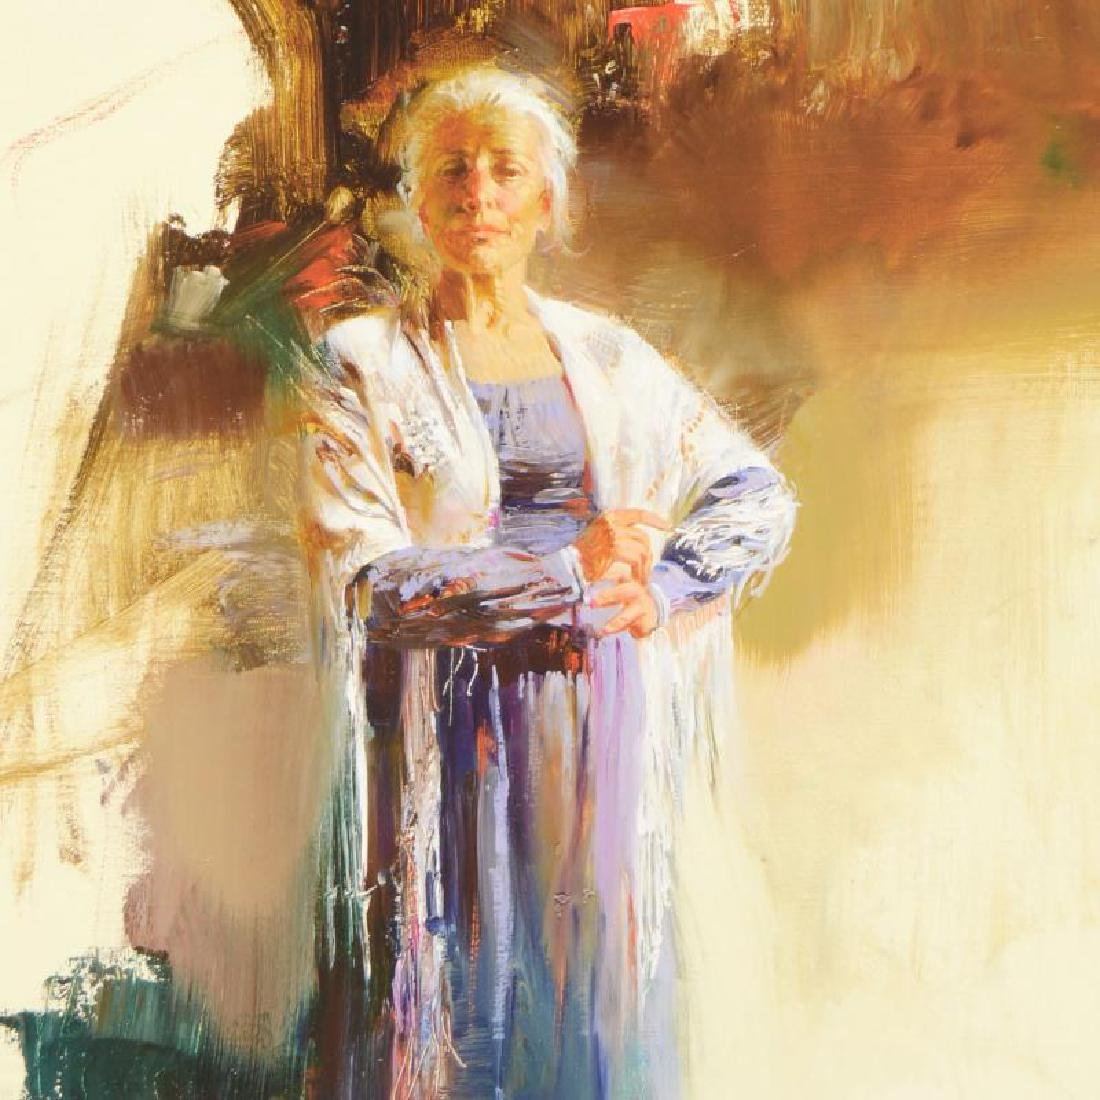 The Matriarch by Pino (1939-2010) - 2